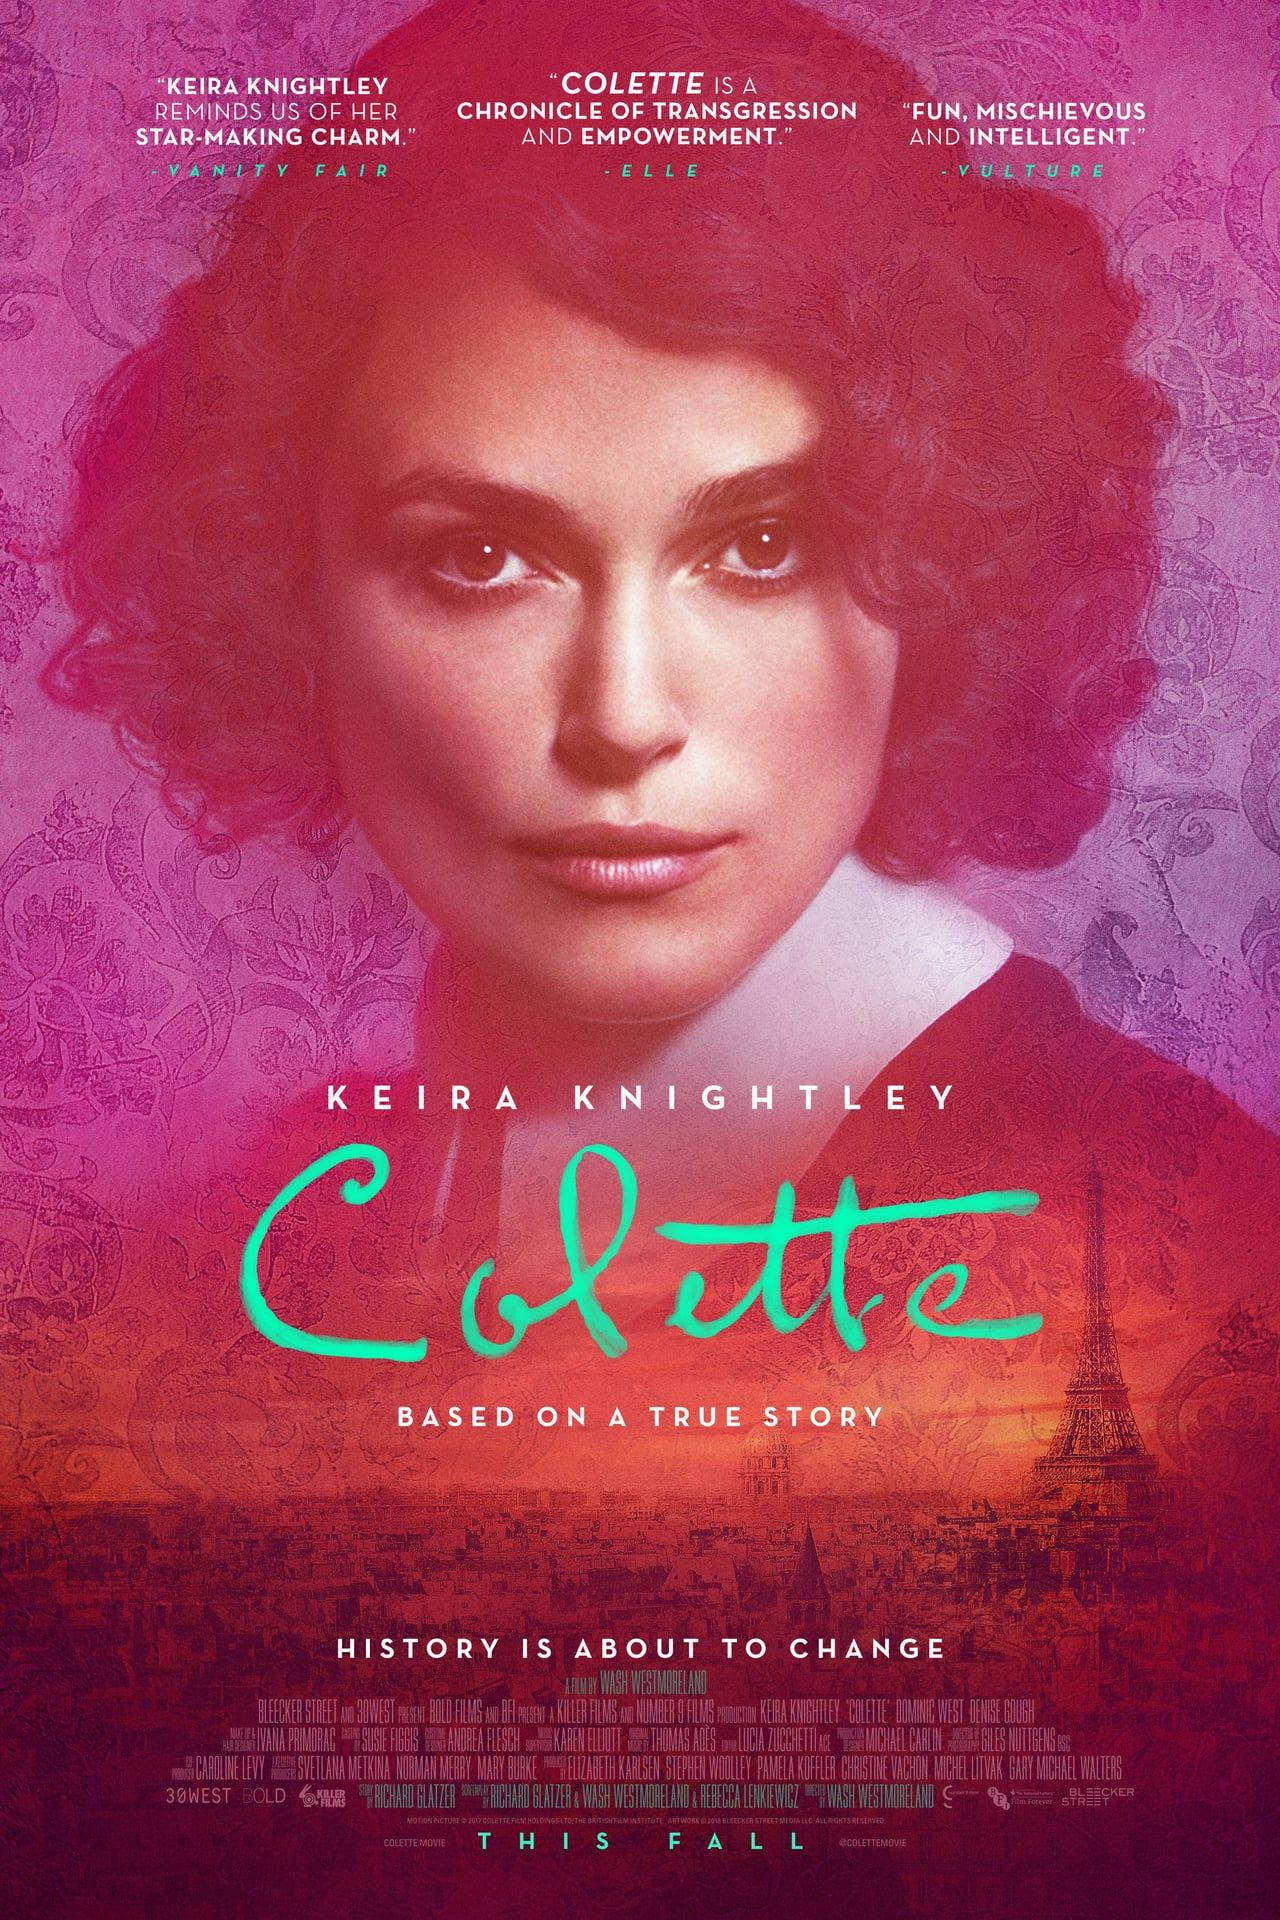 *Free download)))~Colette 2018 DVDRip FULL MOVIE english subtitle Colette  hindi movie movies for free